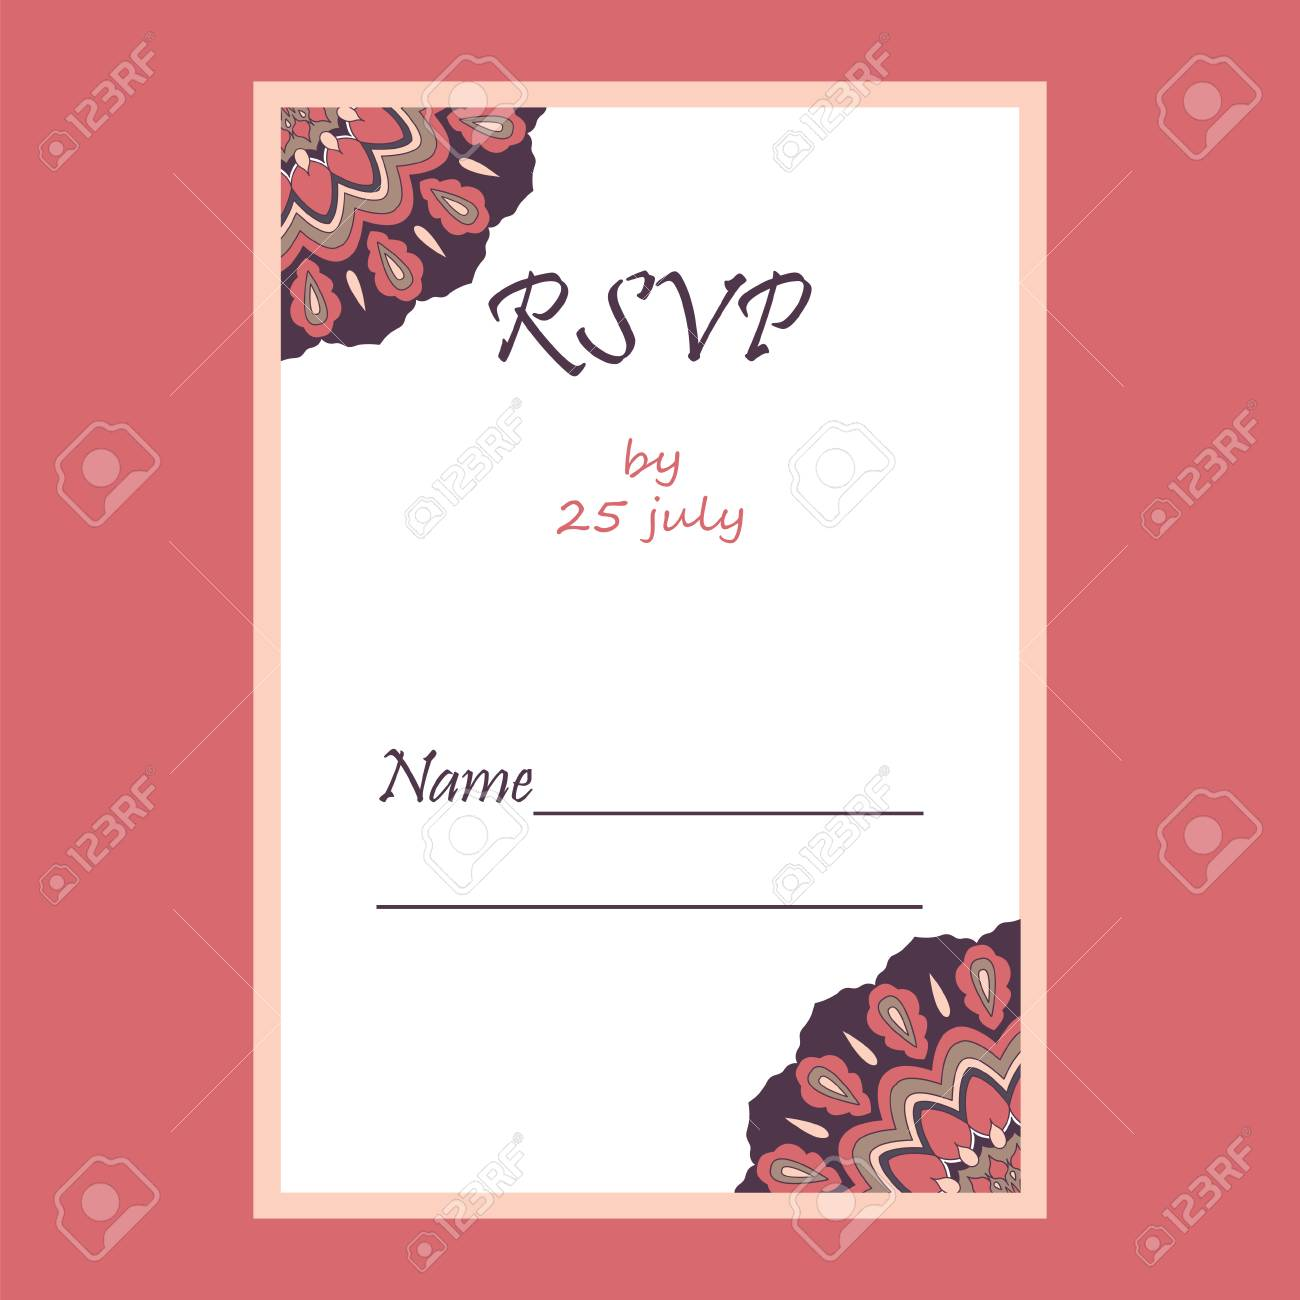 Wedding Invitation Card Suite With Mandala. Royalty Free Cliparts ...